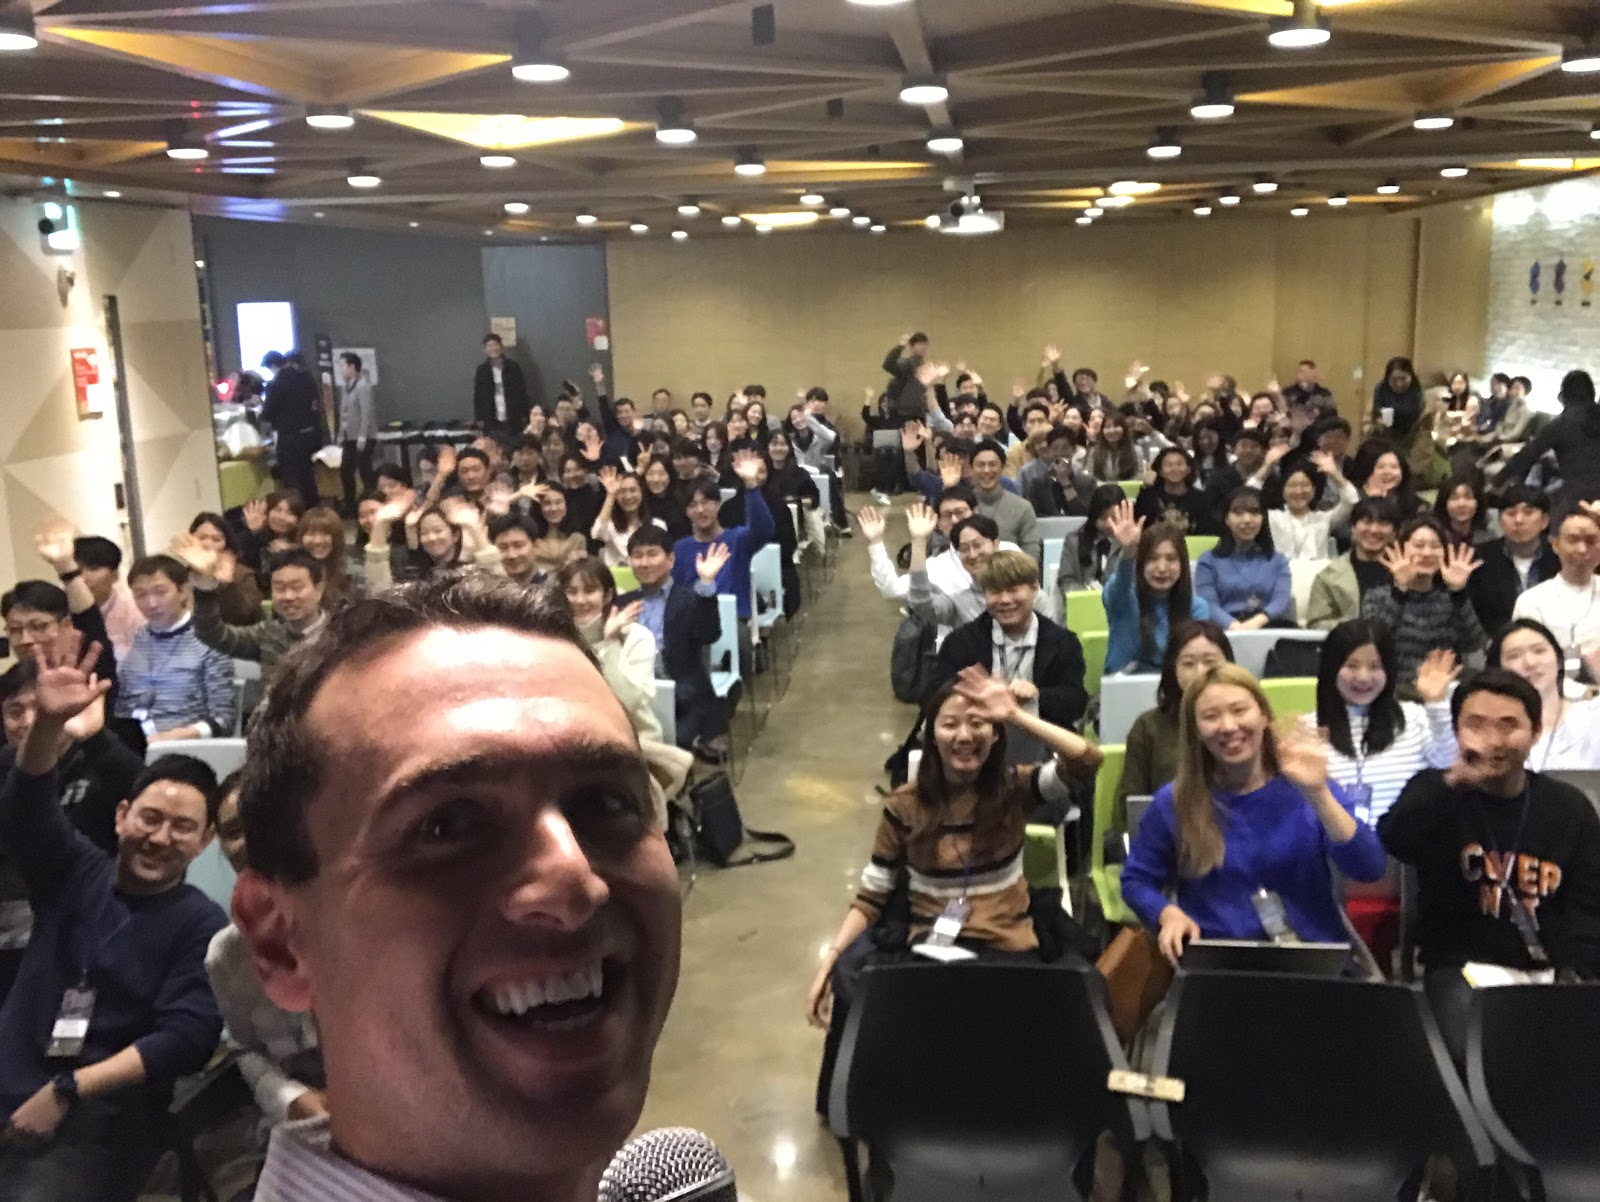 Selfie with audience